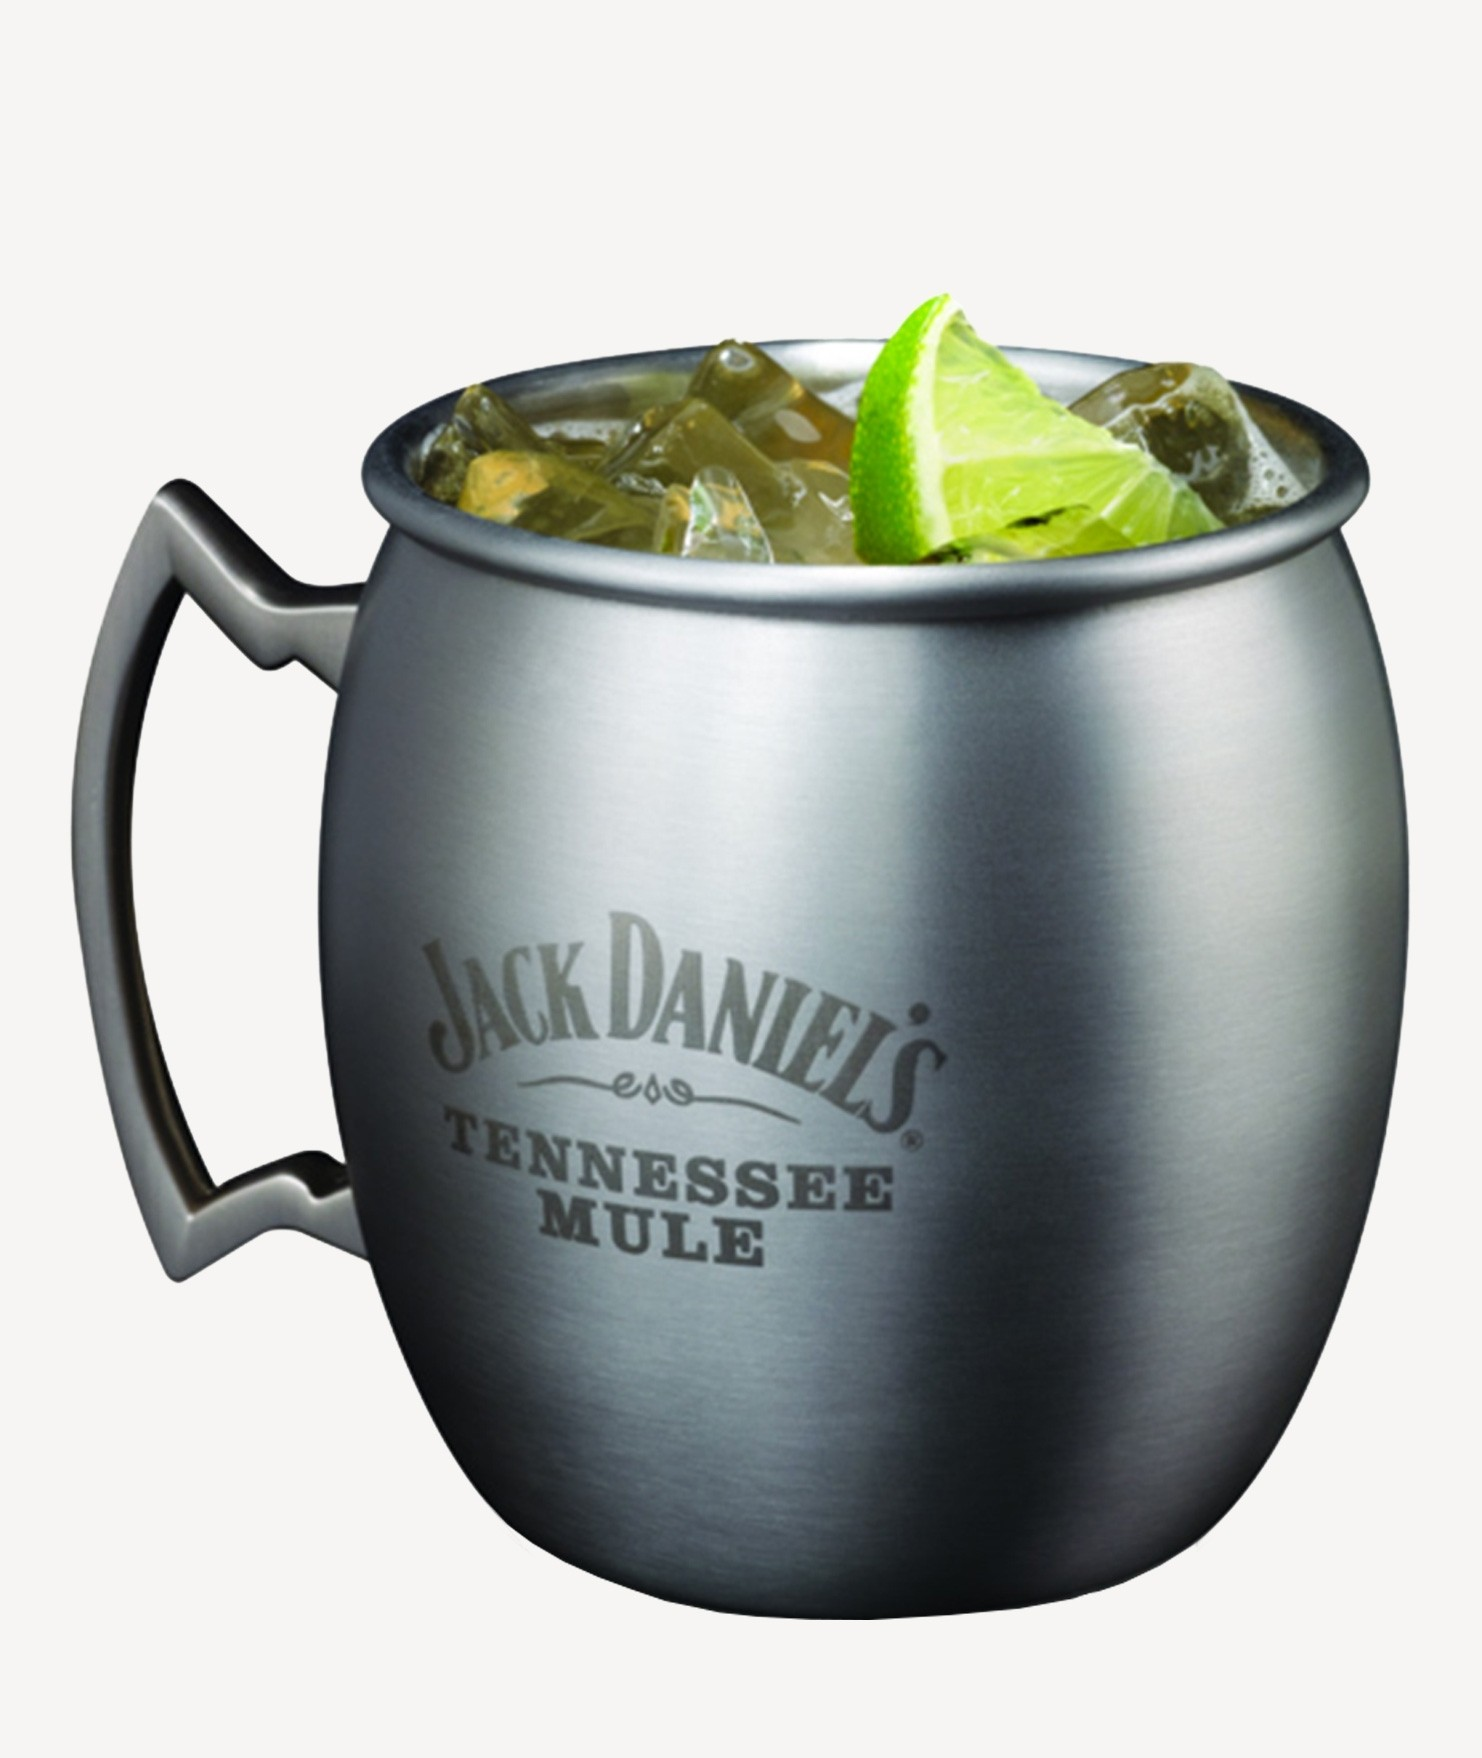 Jack Daniel 's Tennessee Whiskey Mule Photo